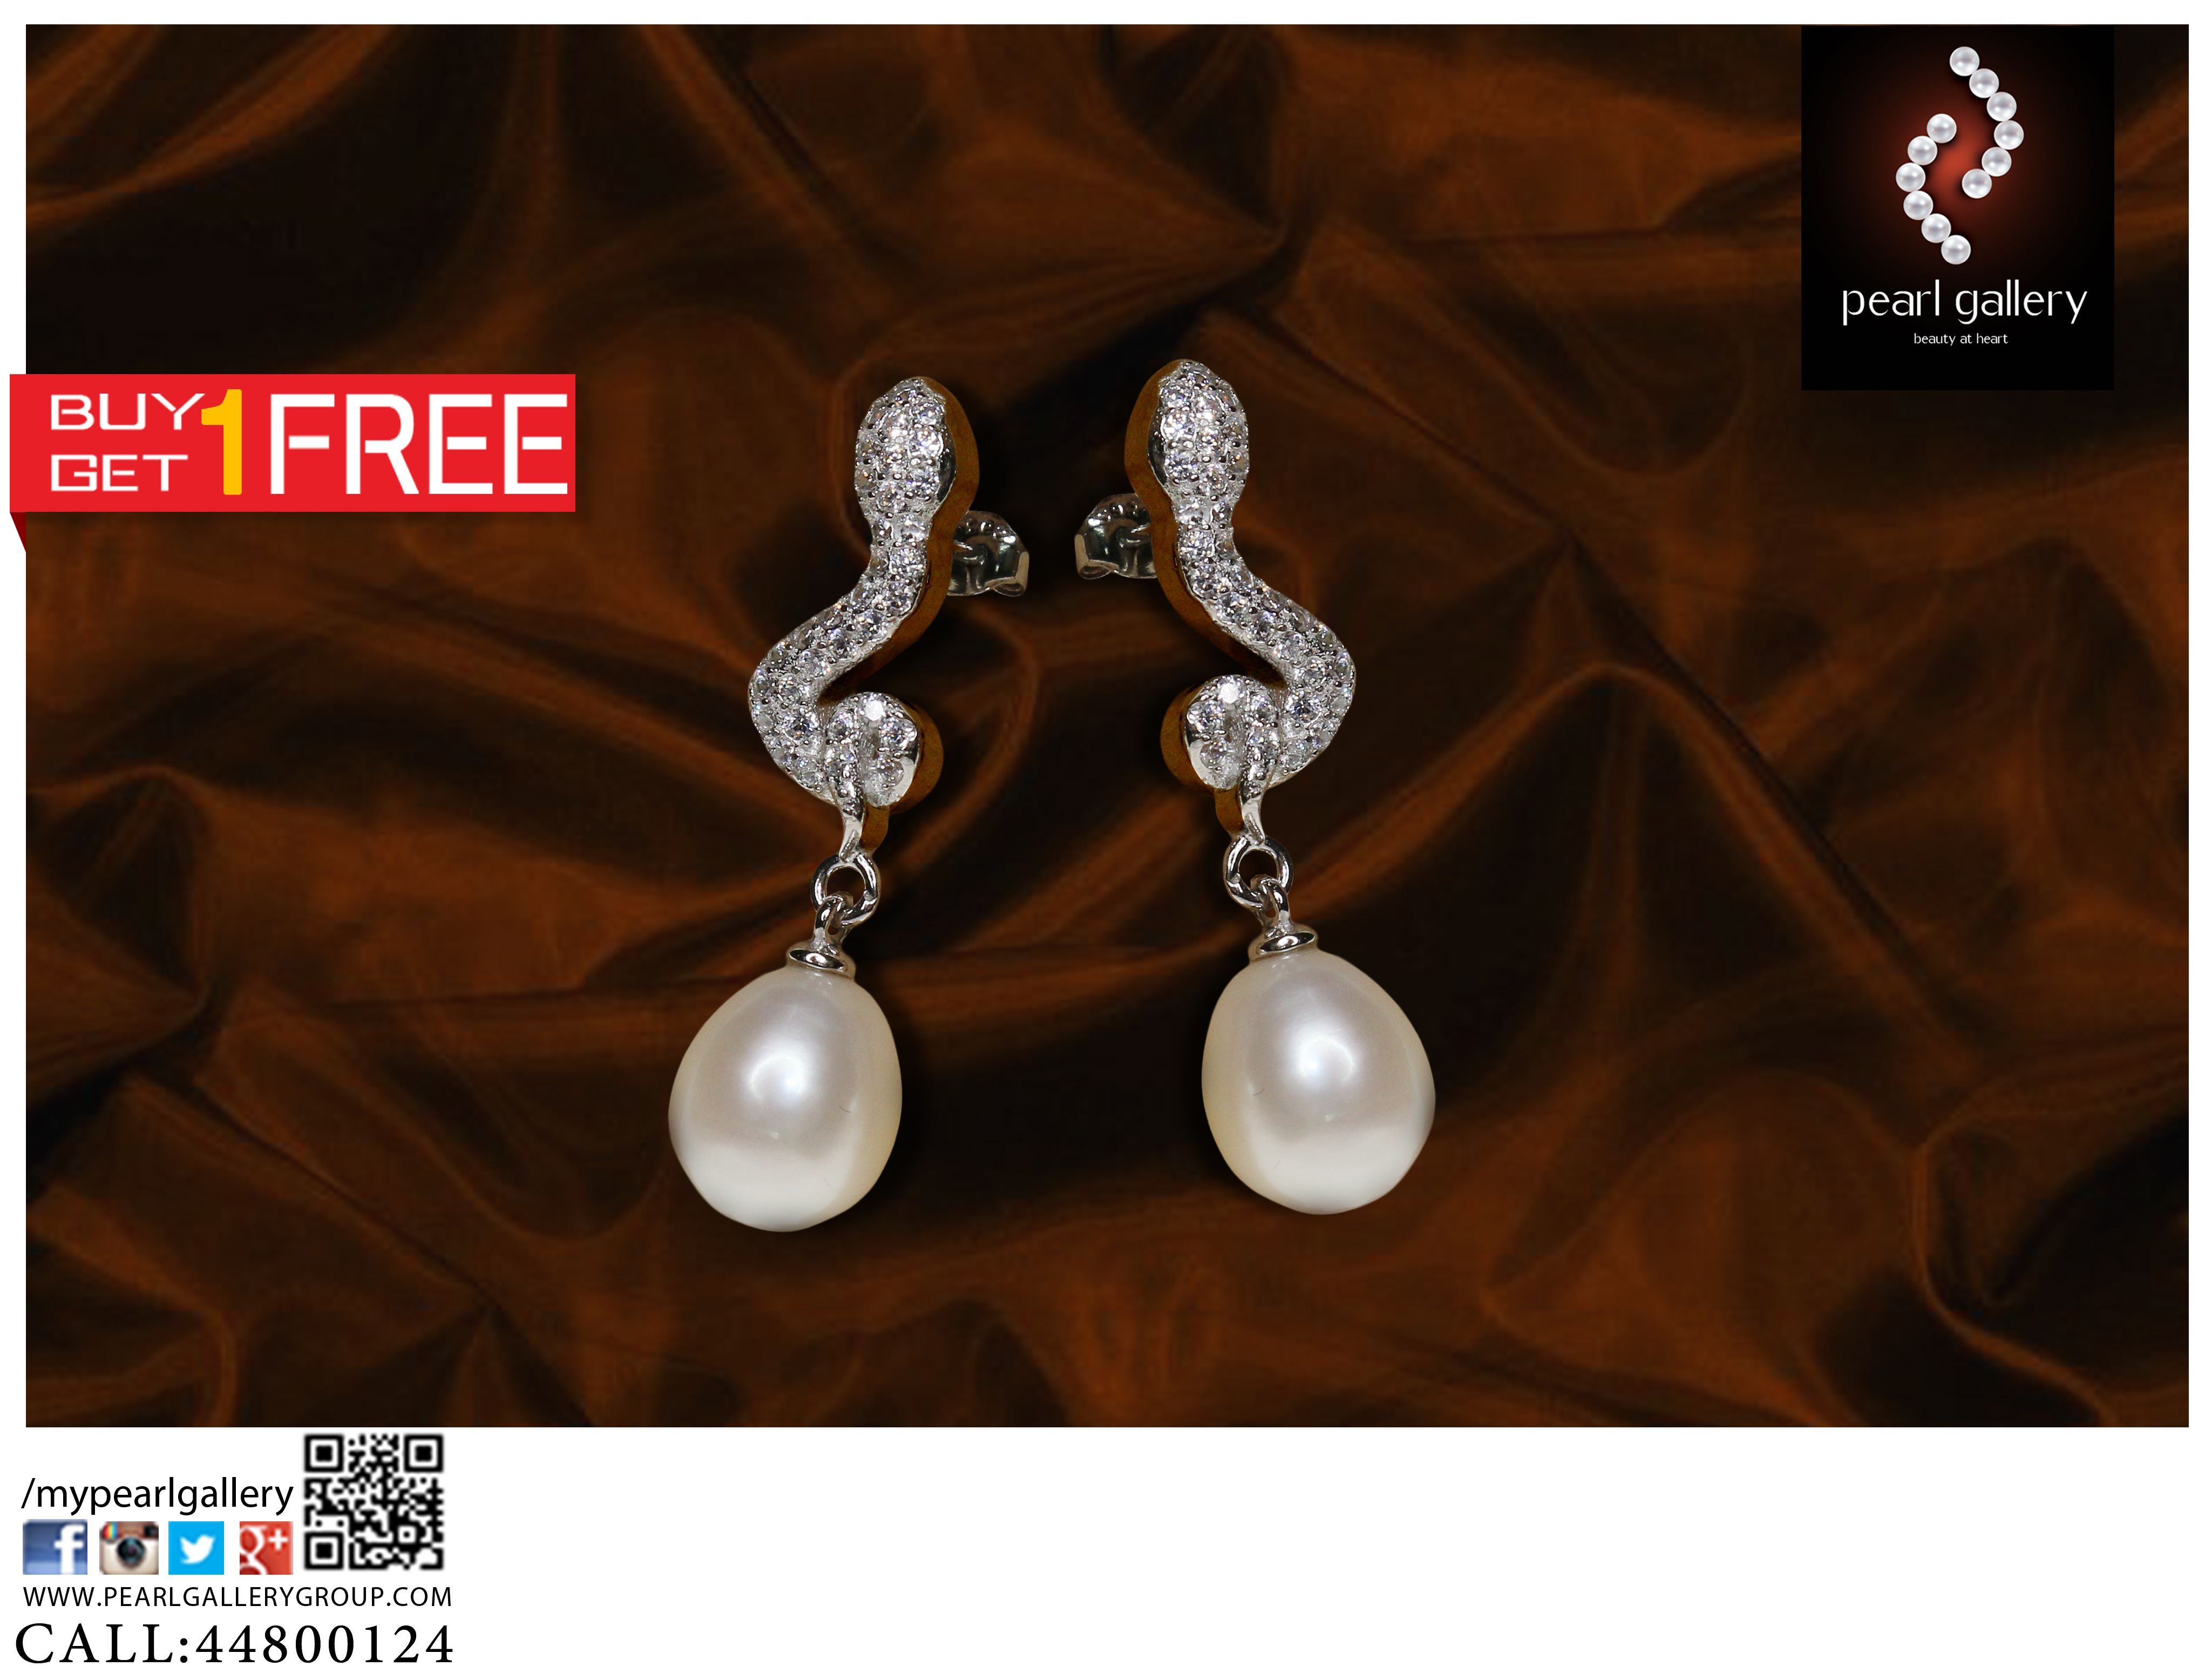 Select From New Collection Fresh Water Pearl Earrings For Women Available At Pearl Gallery Shop For Latest Designs In Pea Pearl Collection Pearls Stuff To Buy